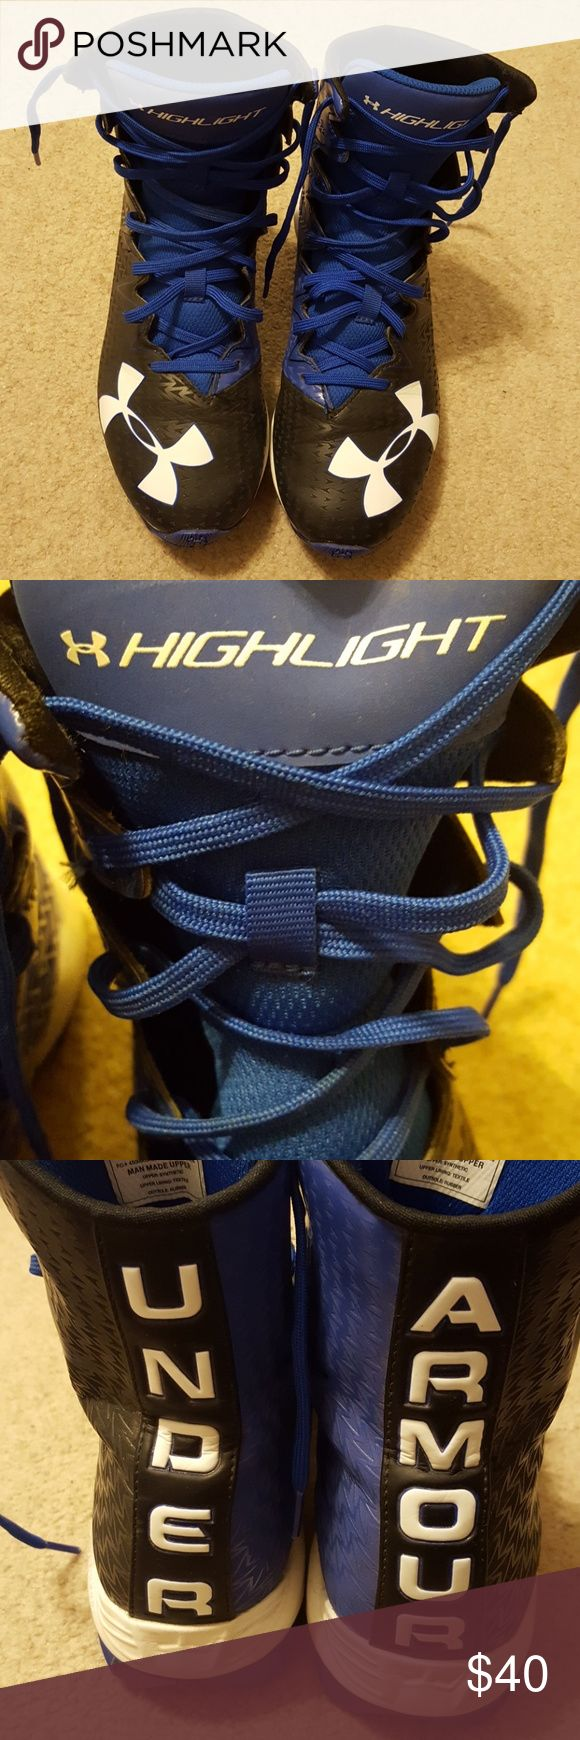 Underarmour Boys Football Cleats Hardly Worn Great Condition  Fits Ages 11-12 / 6th Grader Under Armour Shoes Sneakers